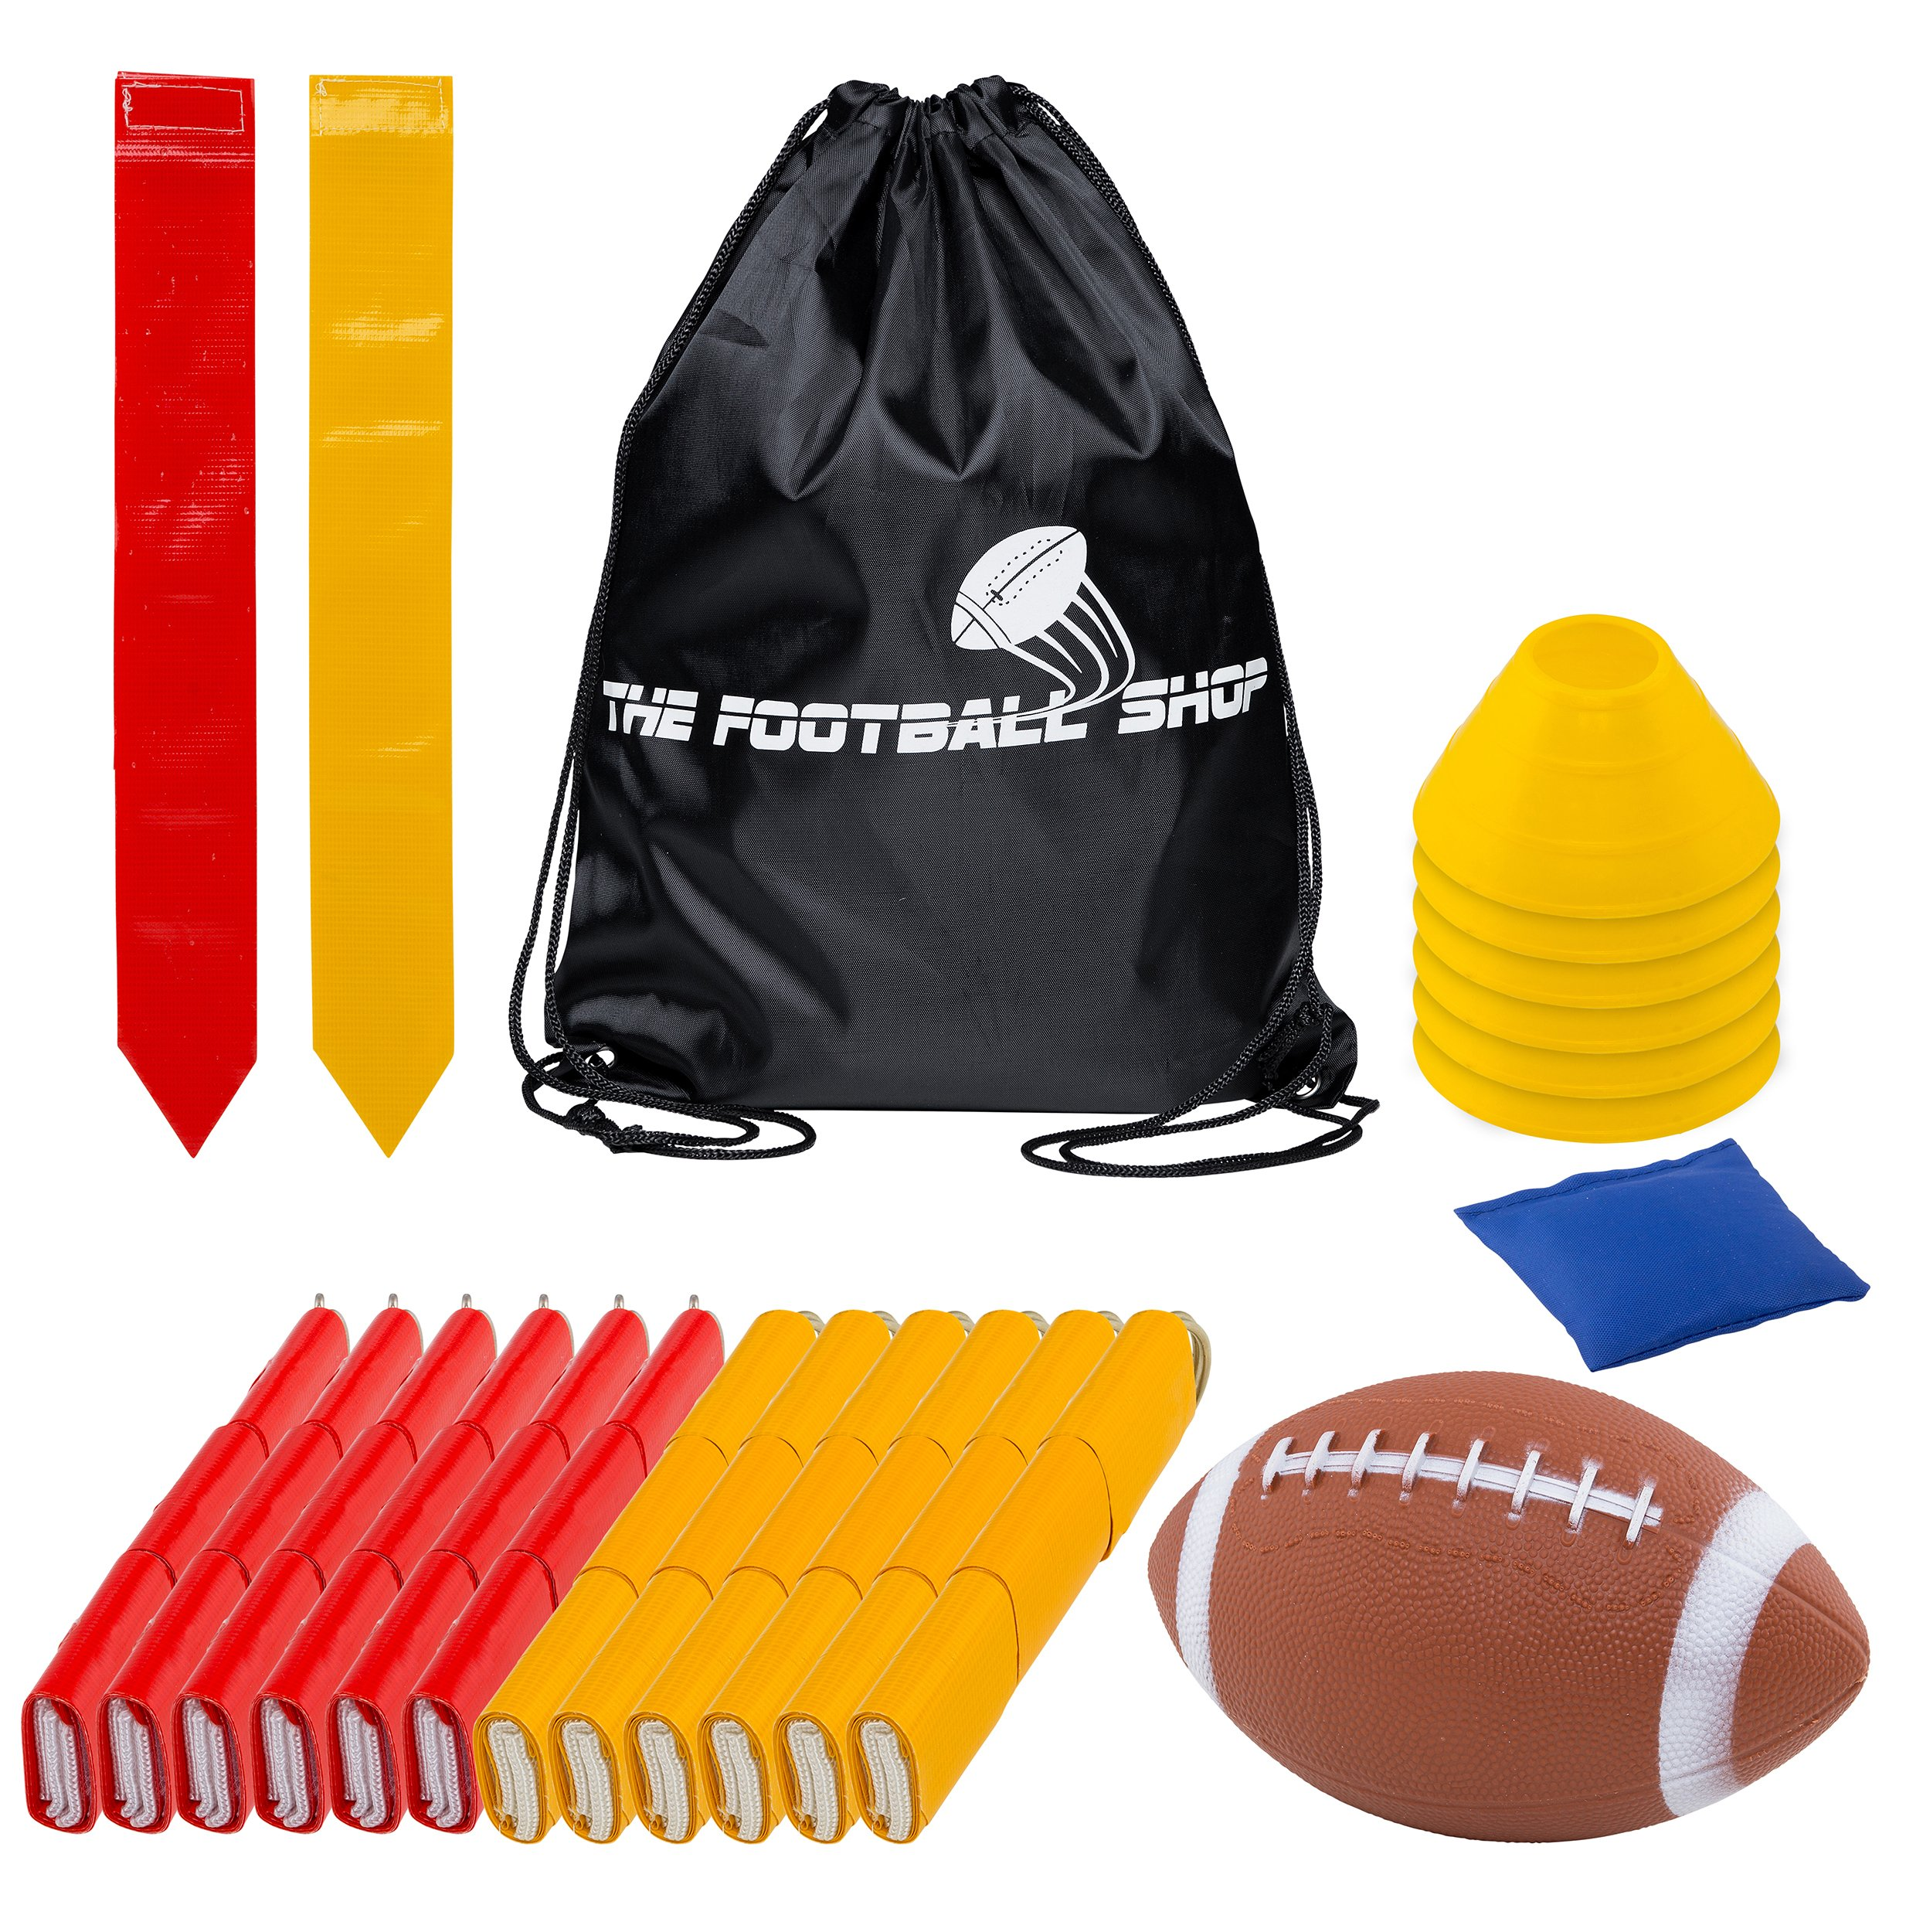 Flag Football Set for 12 Players - Includes Durable Flag Belts and Flags, Cones, Bean Bag, Carrying Backpack, and Football - Huge 55 Piece Complete Set (Red and Yellow)